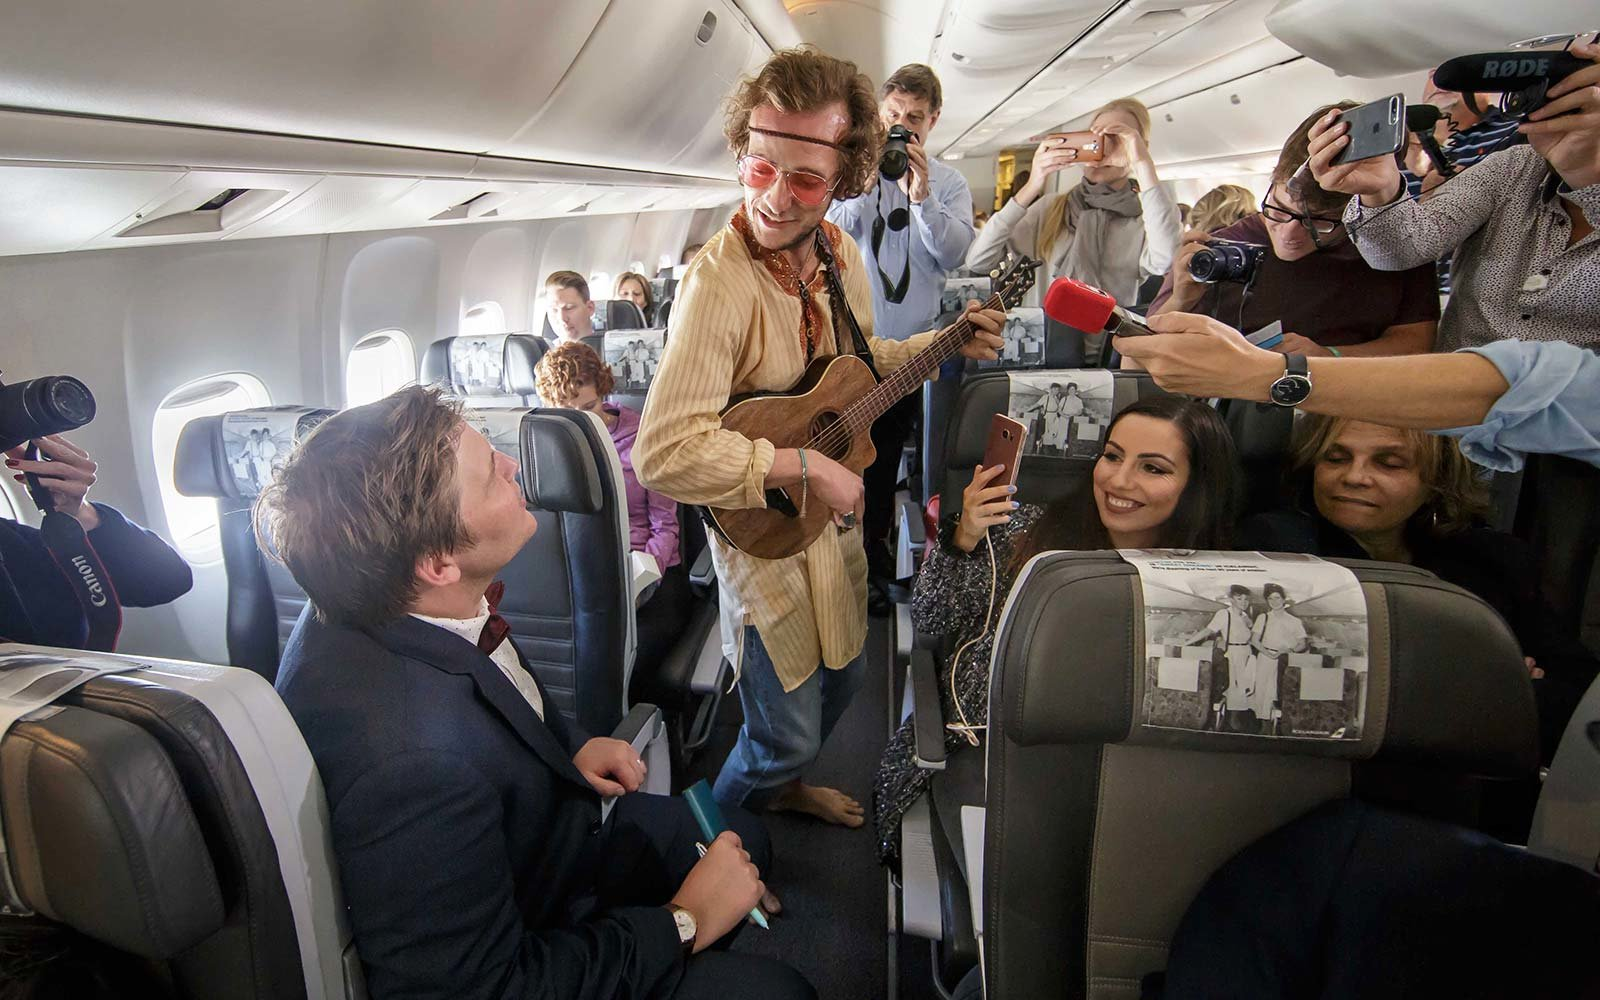 Icelandair flight Stopover Pass Ahead of Time Performance Live Entertainment